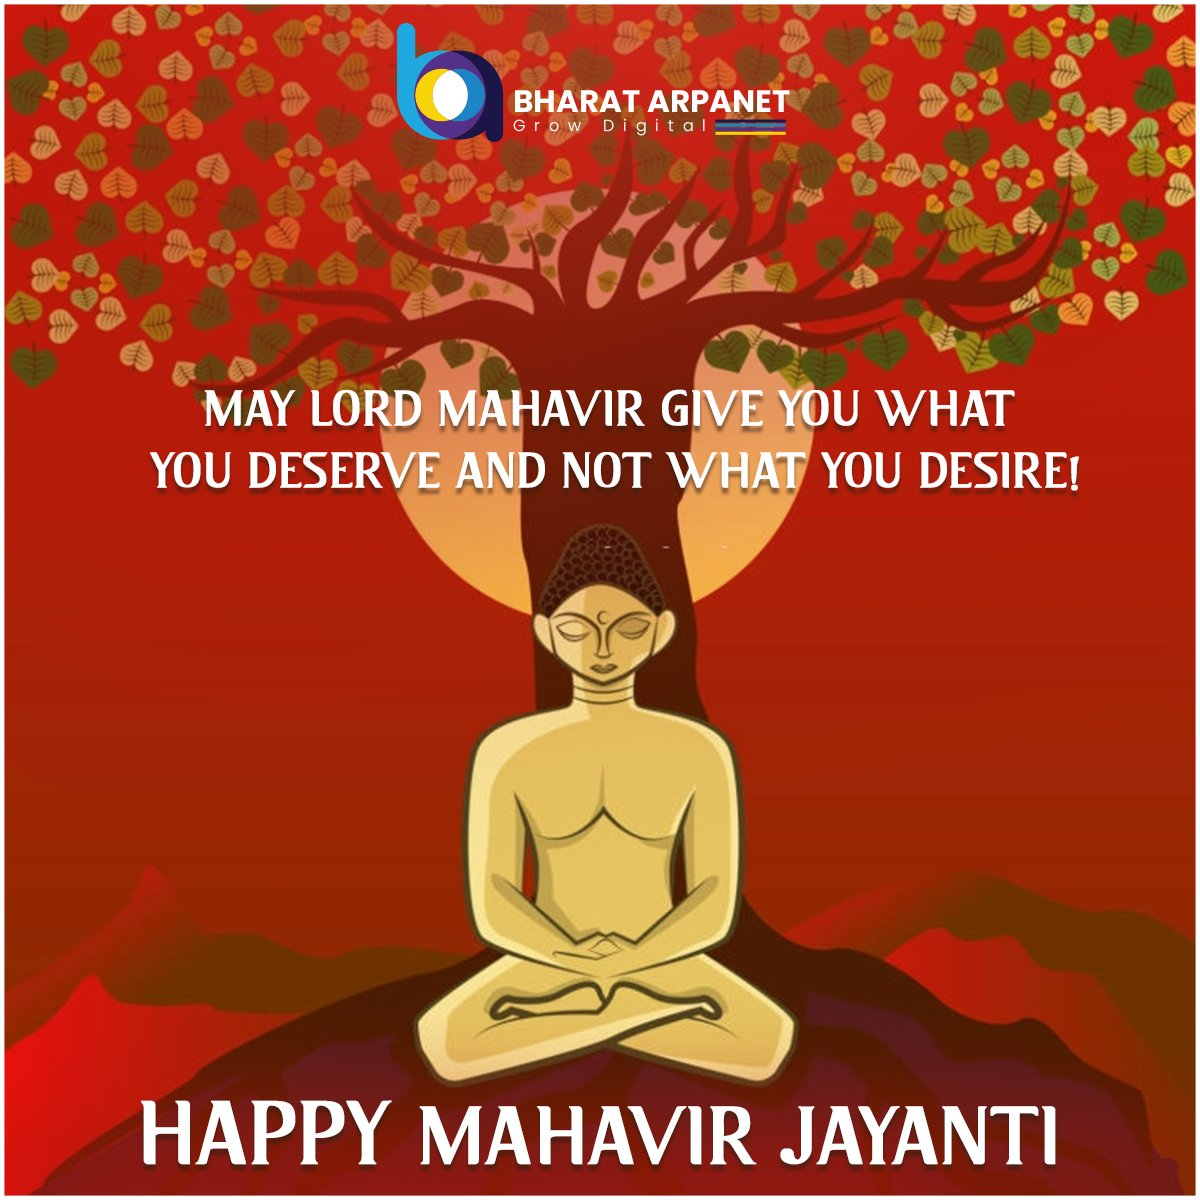 Let's Pray for Peace and Harmony for all the humankind on this auspicious day.  Happy Mahavir Jayanti!   #MahavirJayanti #HappyMahavirJayanti2020 #BharatArpanet https://t.co/r6ydXldOjn